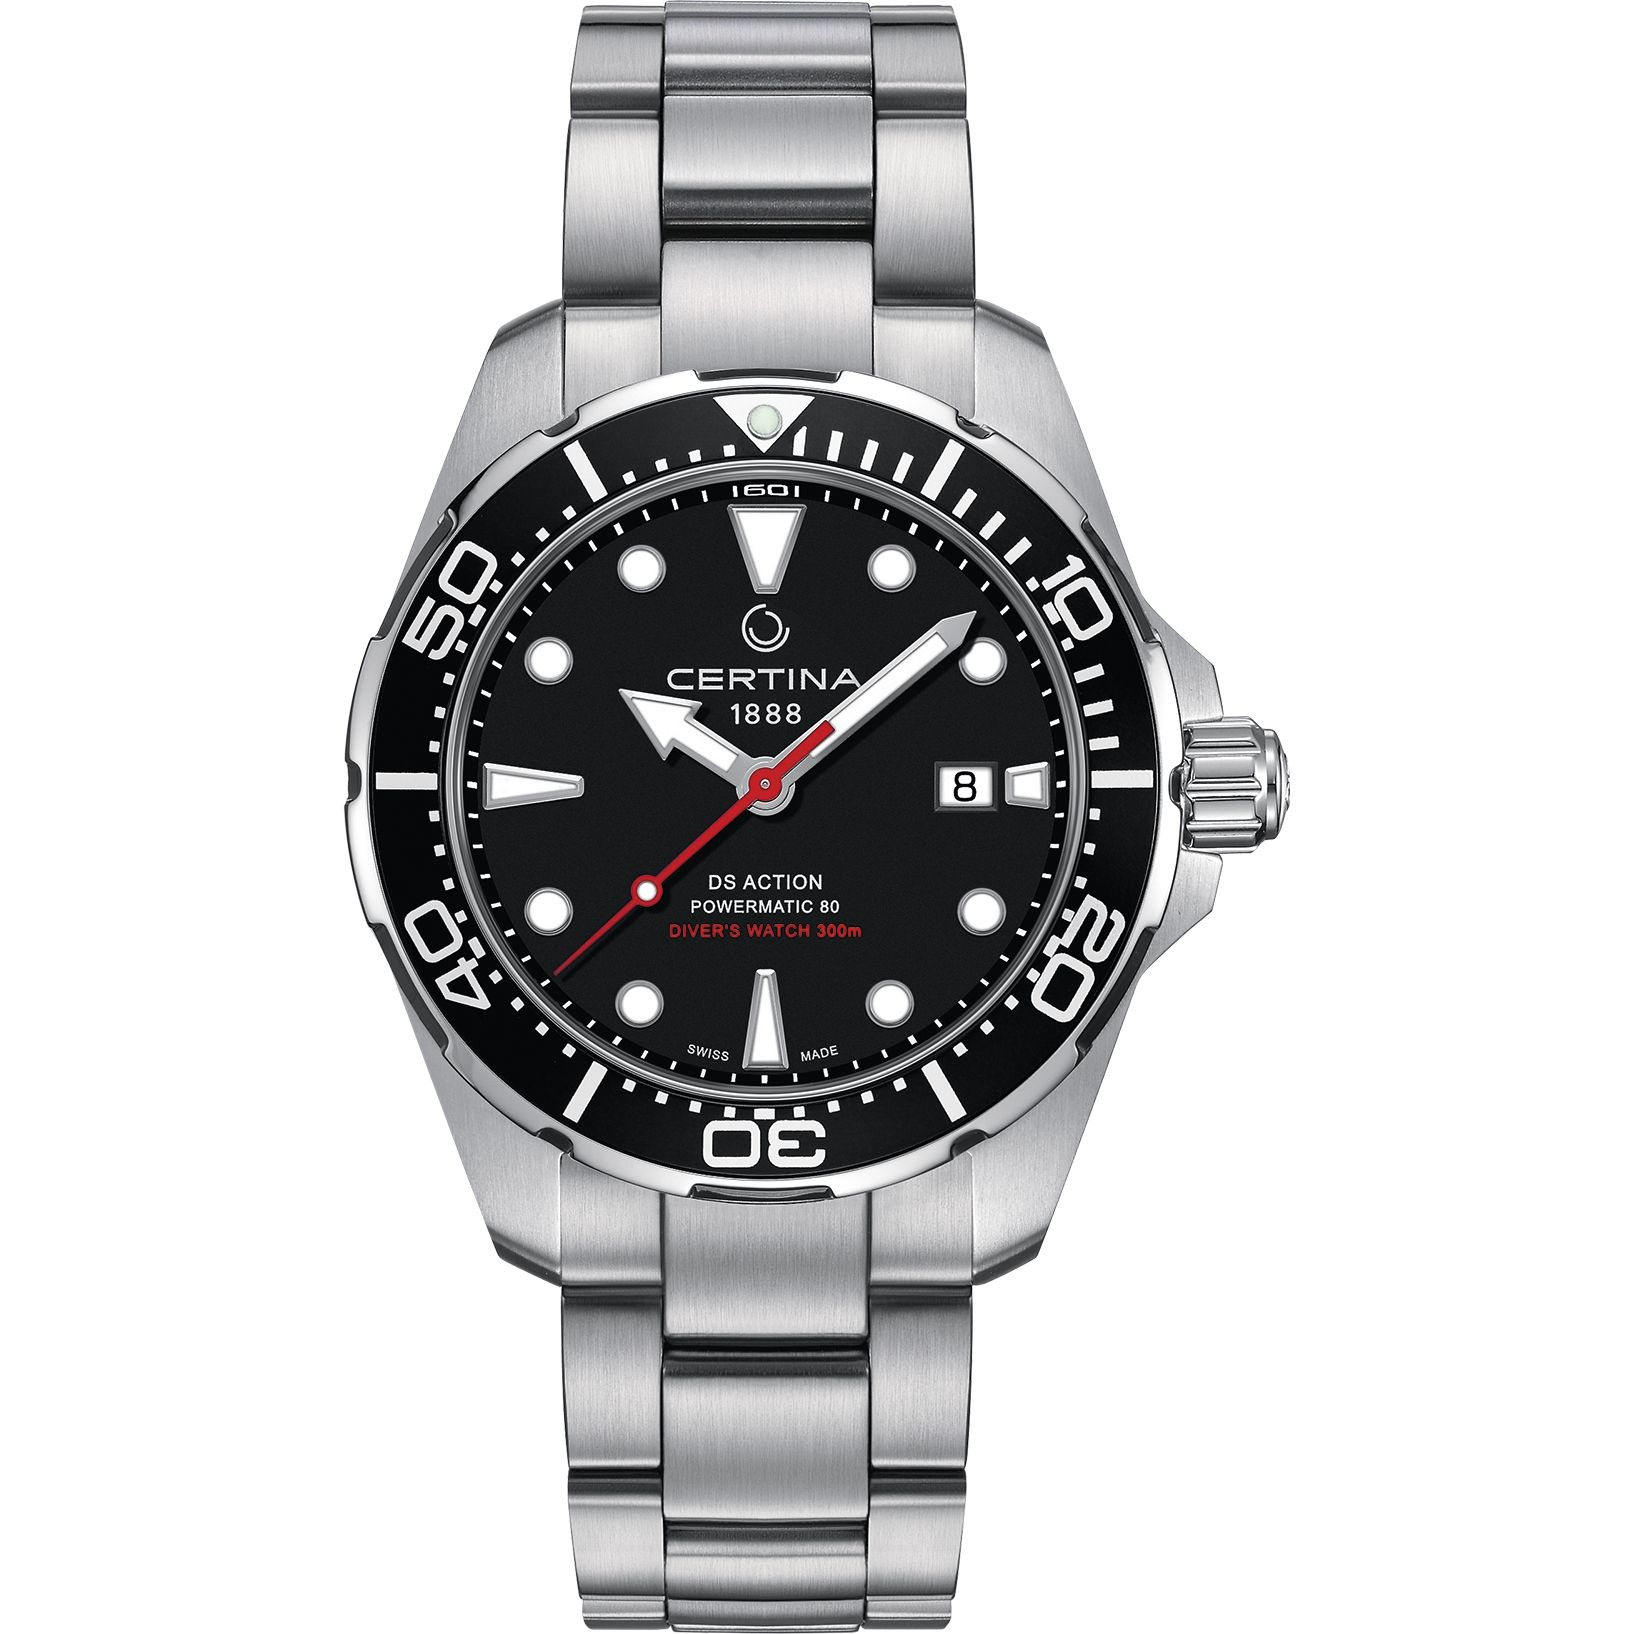 Certina Ds Action Diver Powermatic 80 C0324071105100 Is A Functional And Handsome Gents Watch Material Of The Case Is Stainless Certina Watches Watches For Men